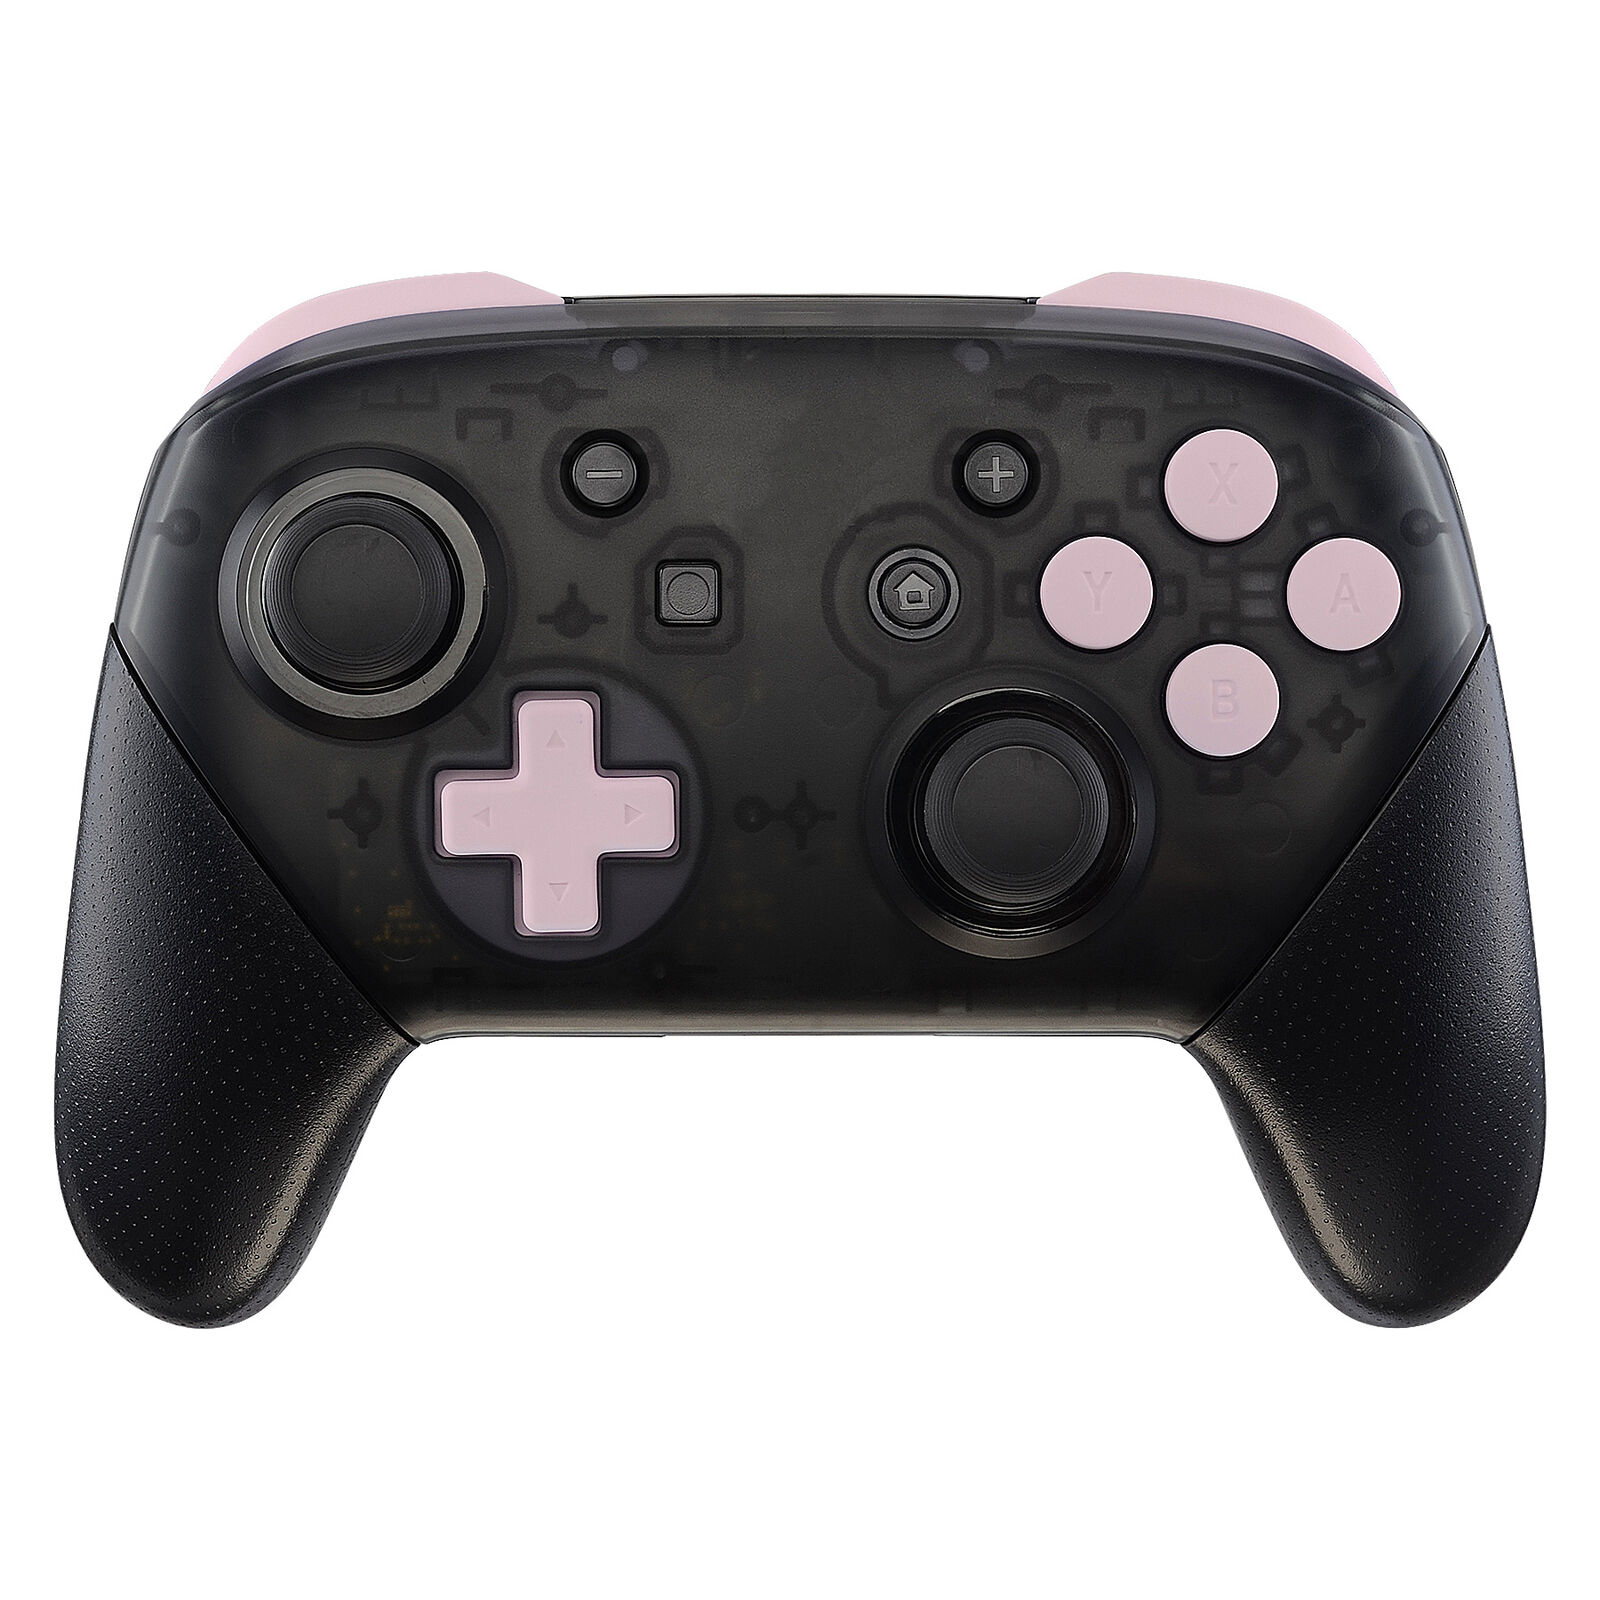 Nintendo Switch Pro Controller Black and Light Pink Buttons